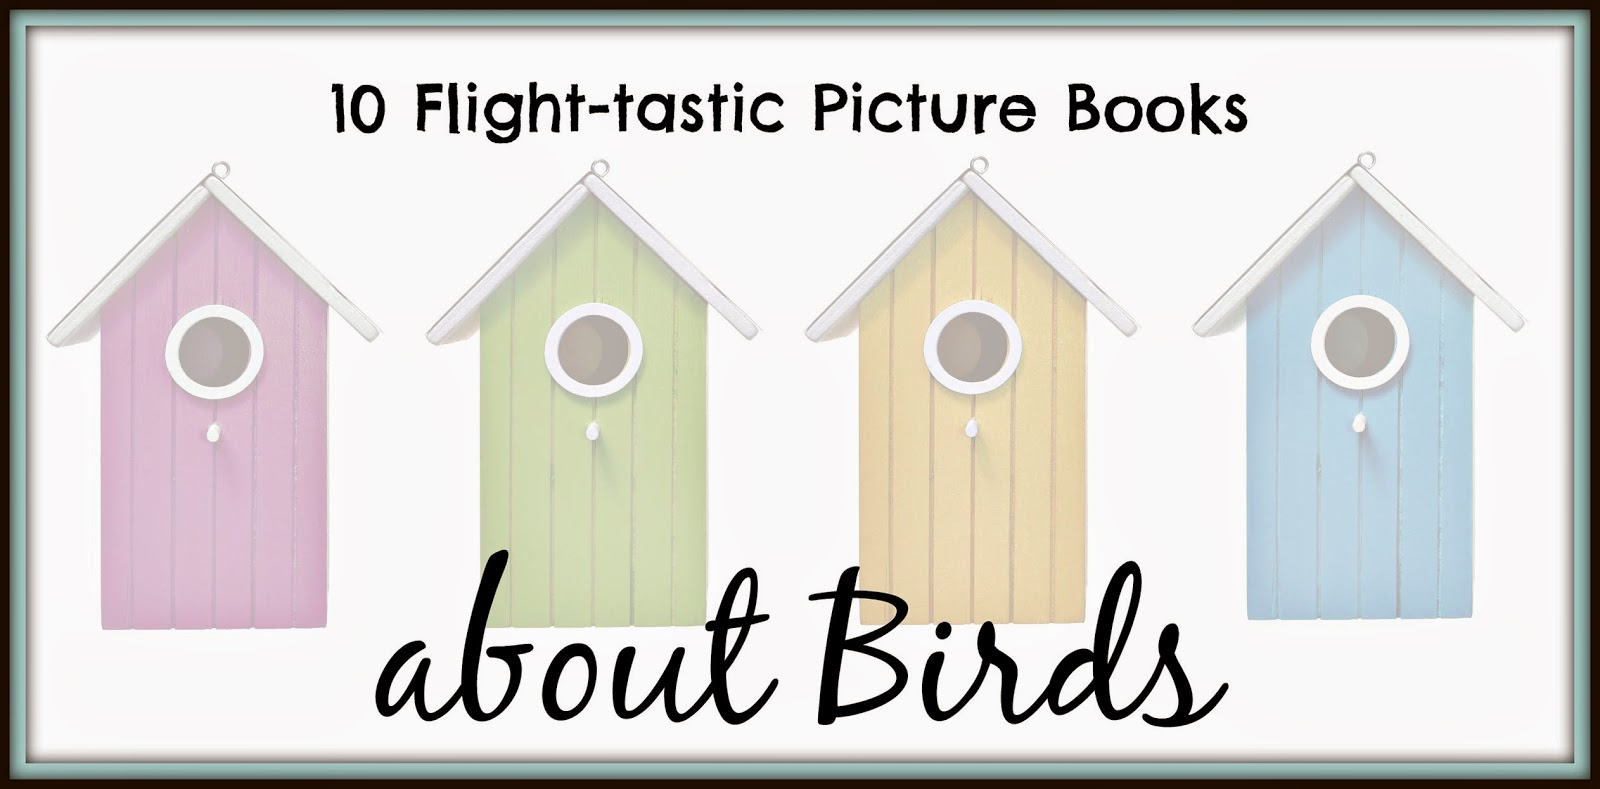 10 Flight-tastic Picture Books about Birds